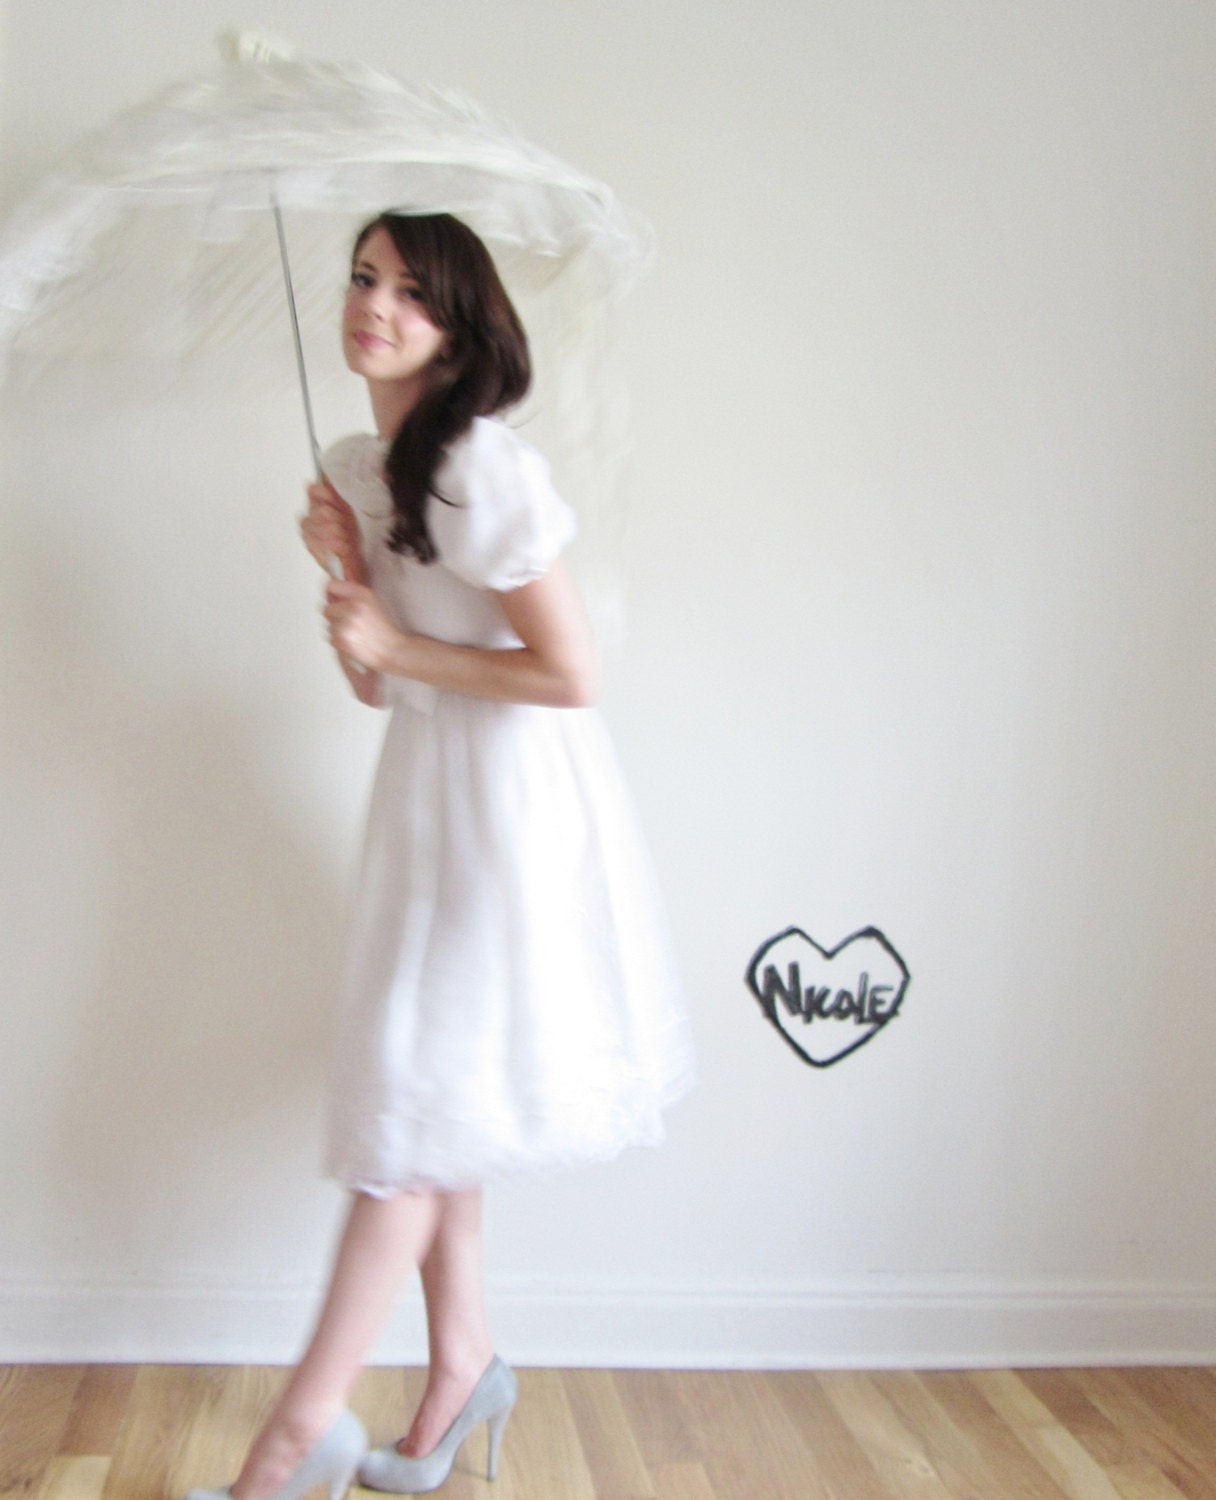 r e s e r v e d white lace parasol . frilly ribbon umbrella . oh my - DOTTO